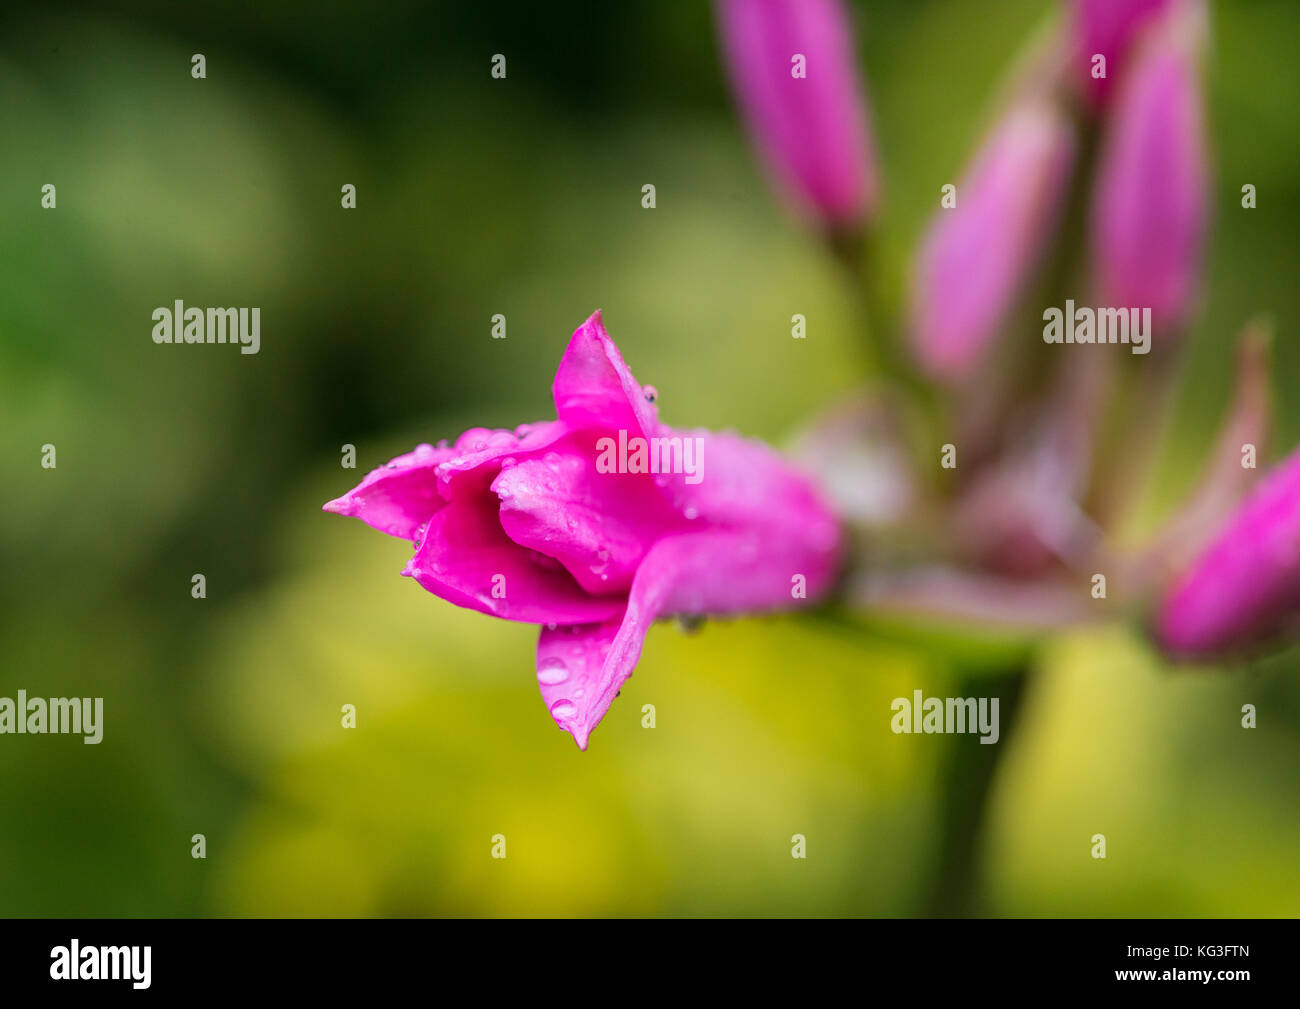 A macro shot of a pink nerine flower bud opening. - Stock Image